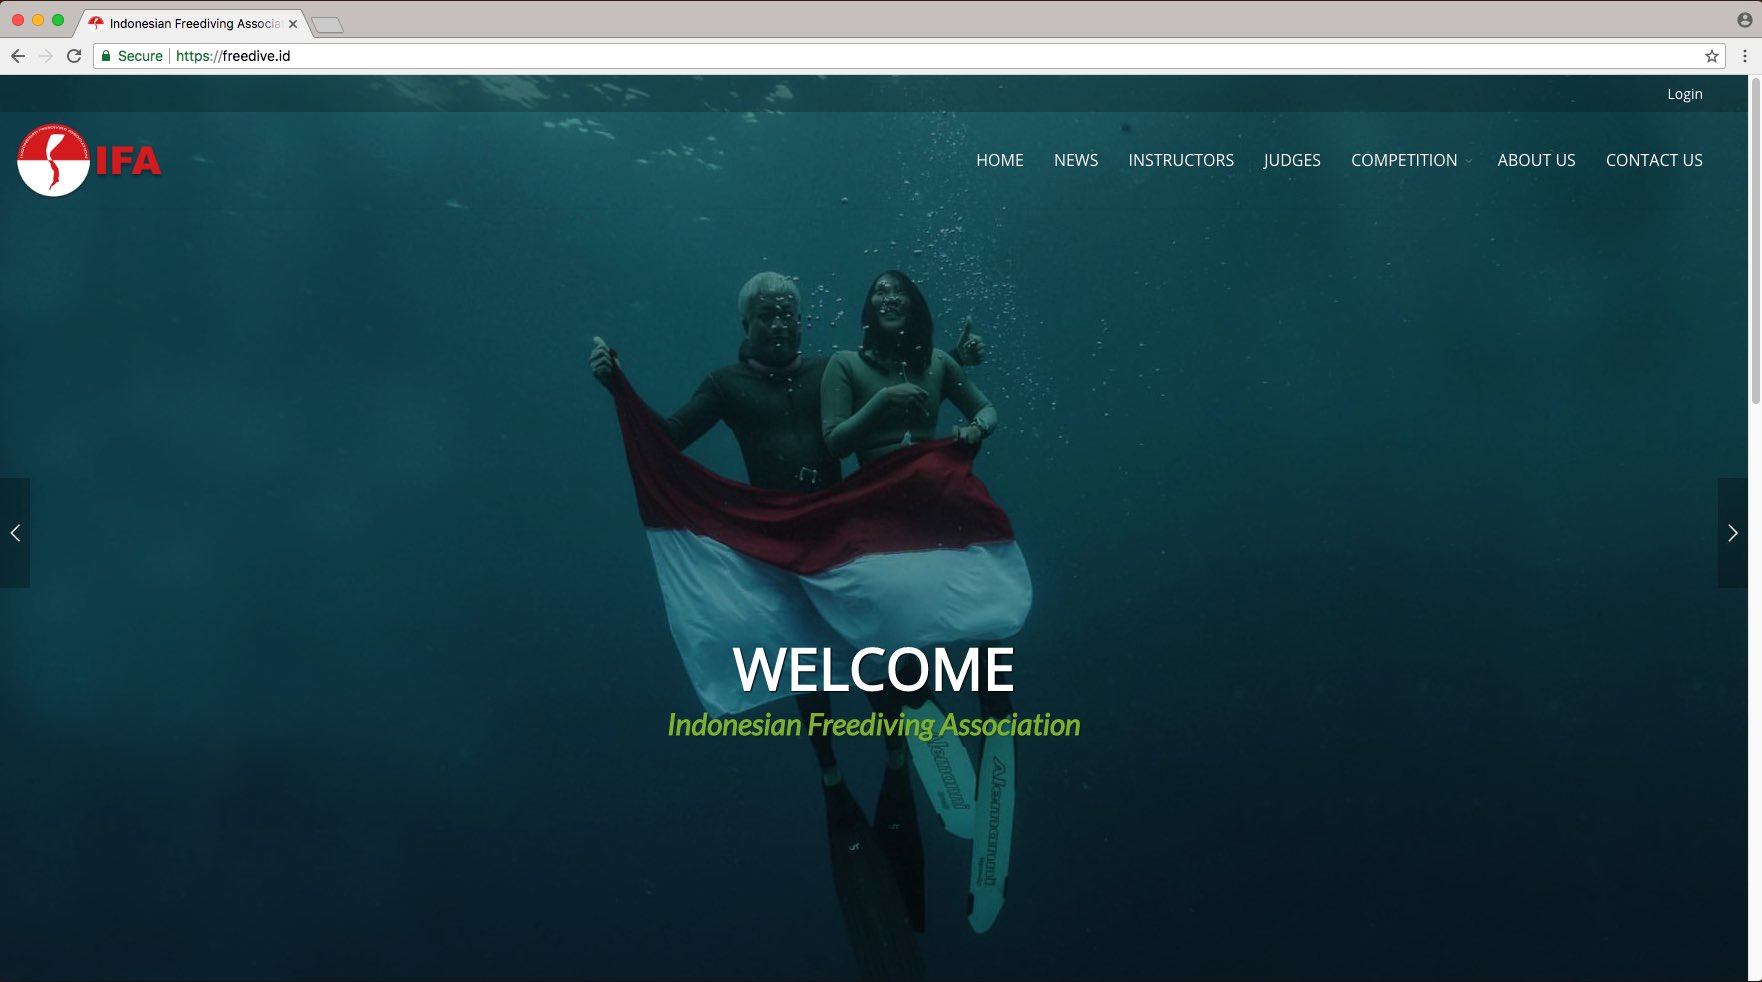 Portfolio Karyampat - Indonesia Freediving Association